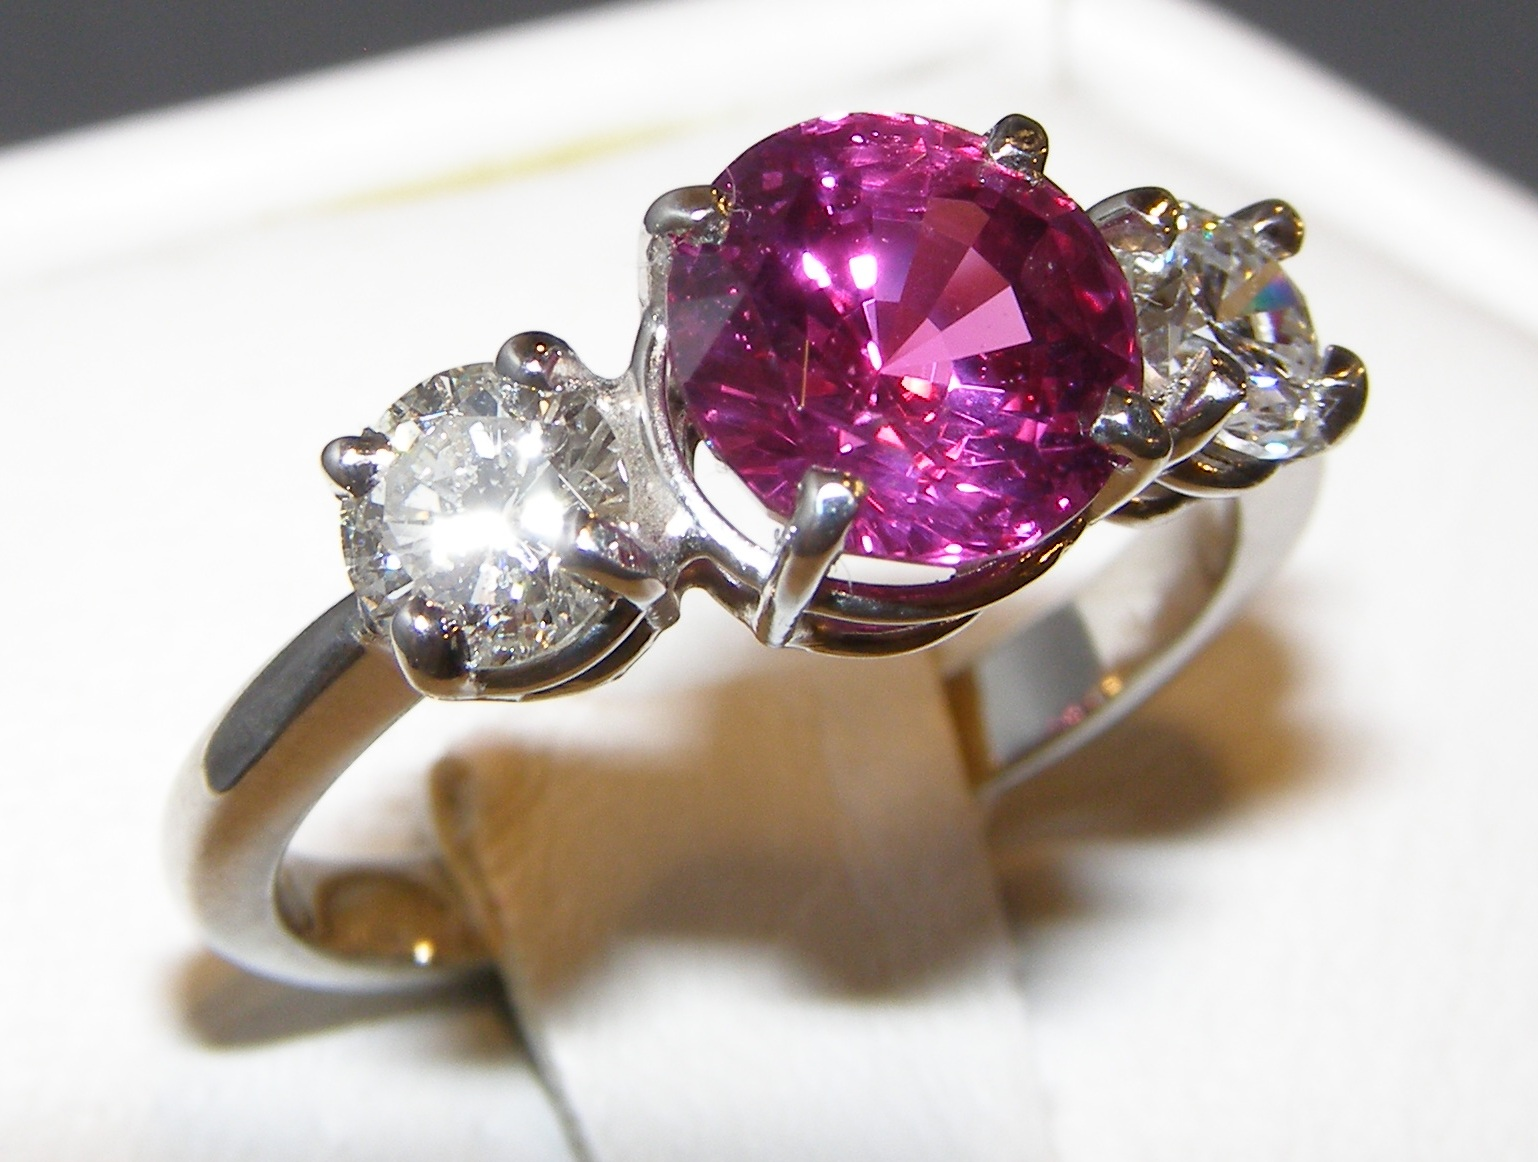 GIA Certified Pink/Ruby Sapphire Diamond Platinum Ring 3.46 ctw